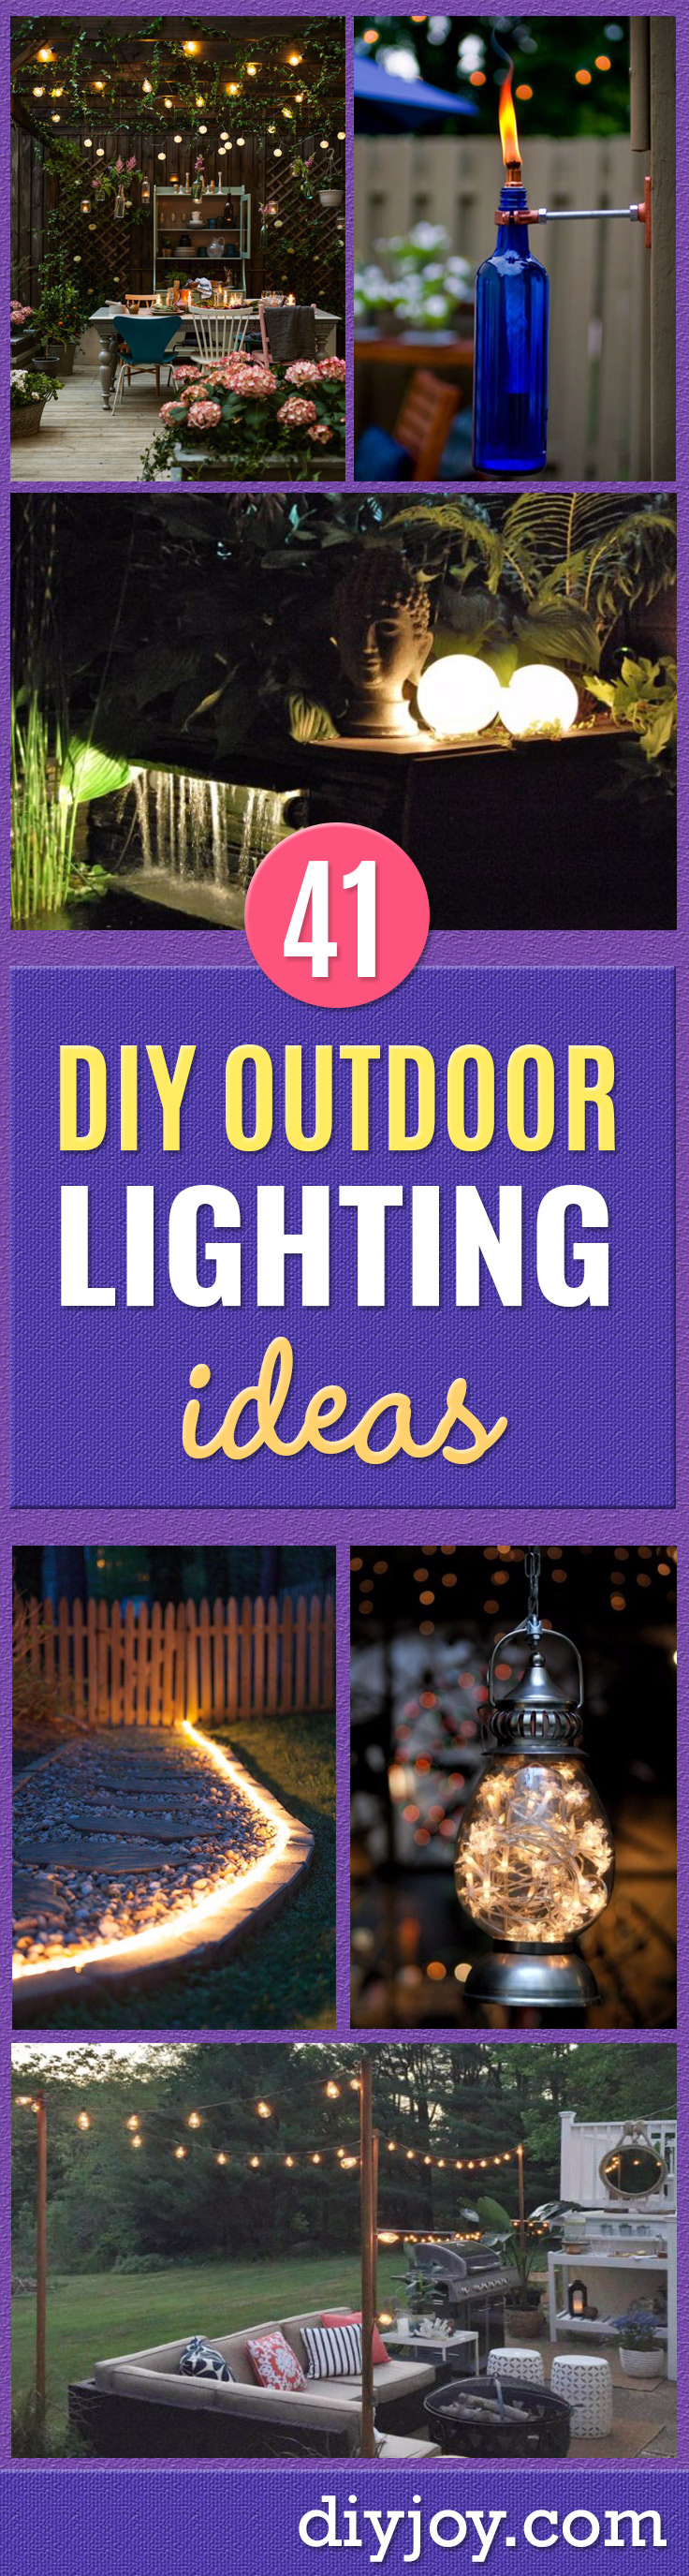 DIY Outdoor Lighting Ideas - Do It Yourself Lighting Ideas for the Backyard, Patio, Porch and Pool - Lights, Chandeliers, Lamps and String Lights for Your Outdoors - Dining Table and Chair Lighting, Overhead, Sconces and Weatherproof Projects - Walkway, Pool and Garden #diy #lighting